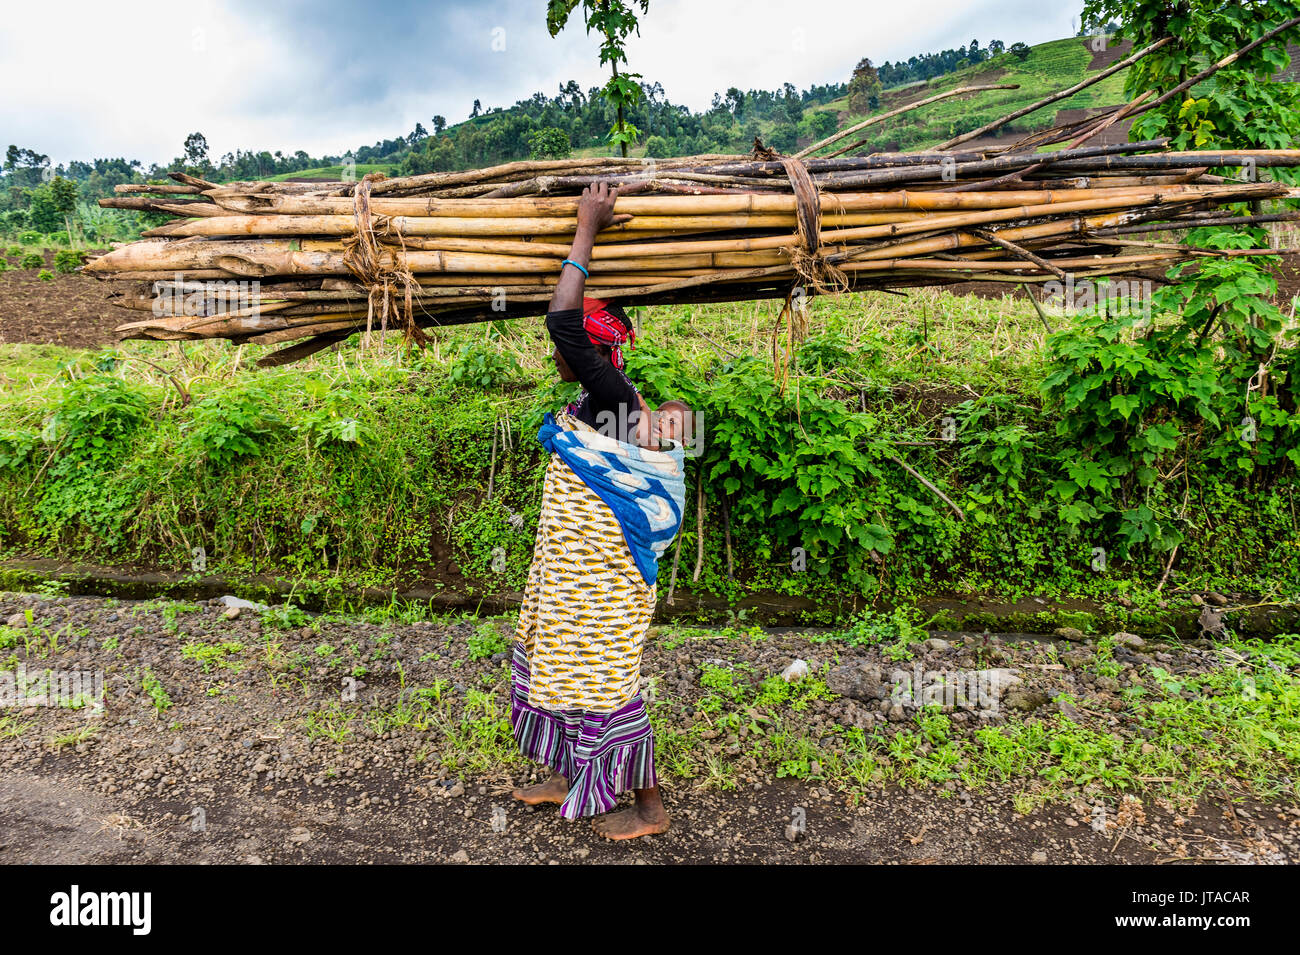 Woman carrying firewood on her head, Virunga National Park, Democratic Republic of the Congo, Africa - Stock Image